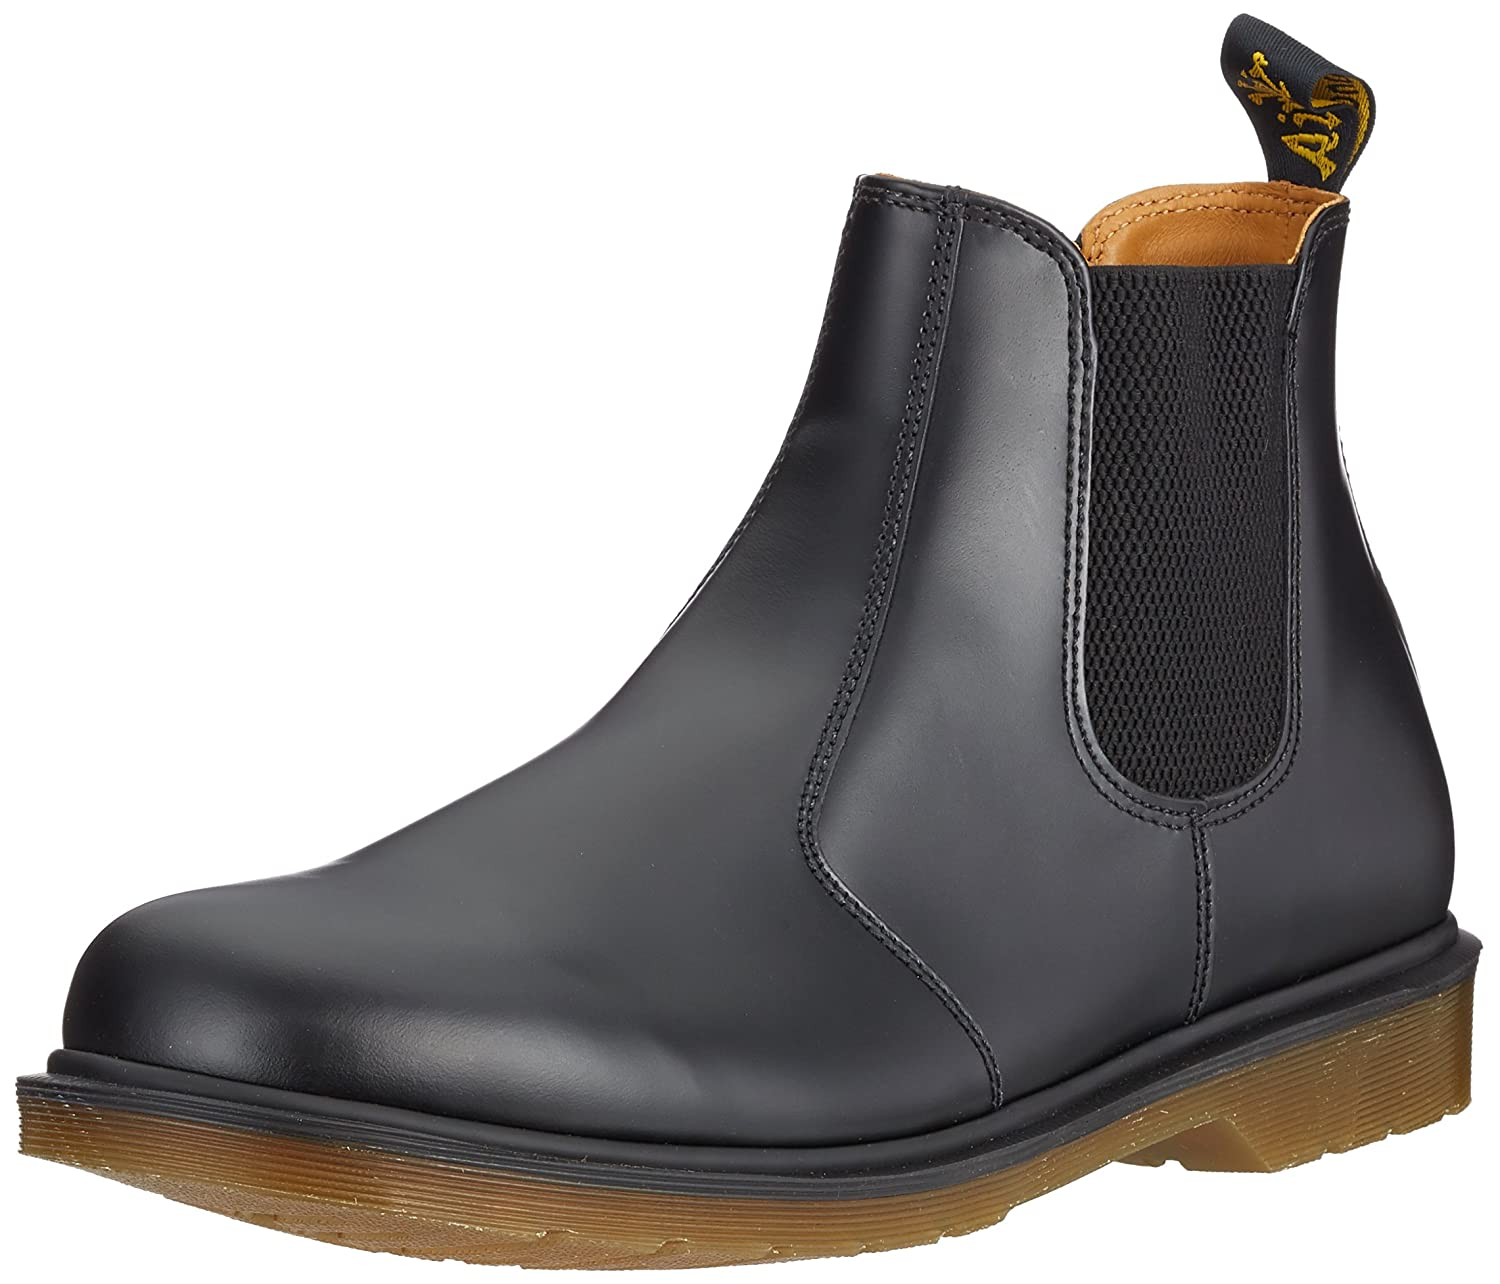 Dr. Martens 2976 Chelsea Boot,Black Smooth B00CM9AQGU 11 M UK|Black